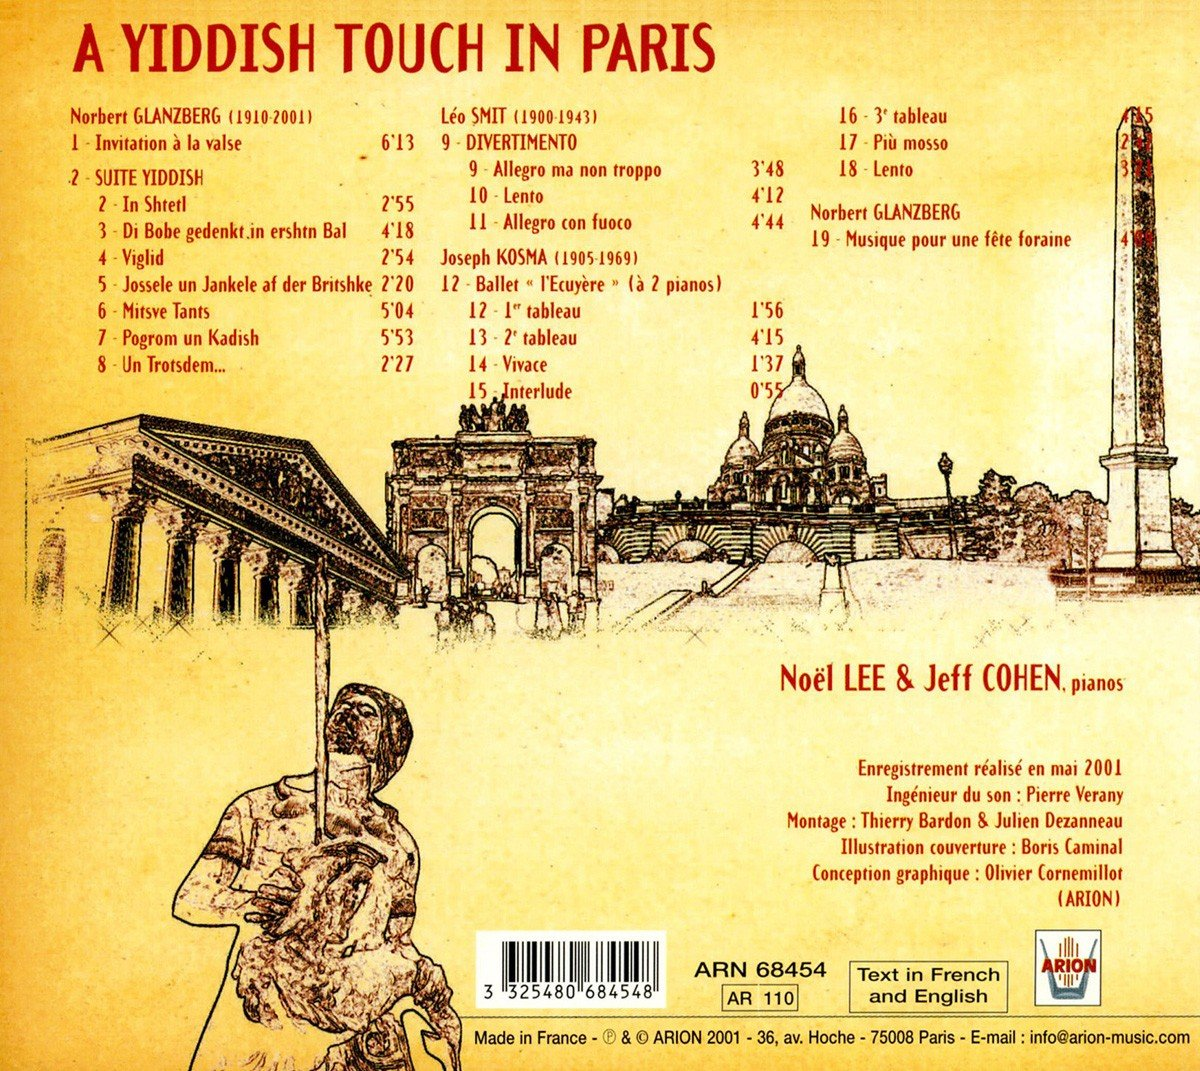 A Yiddish Touch in Paris by Arion